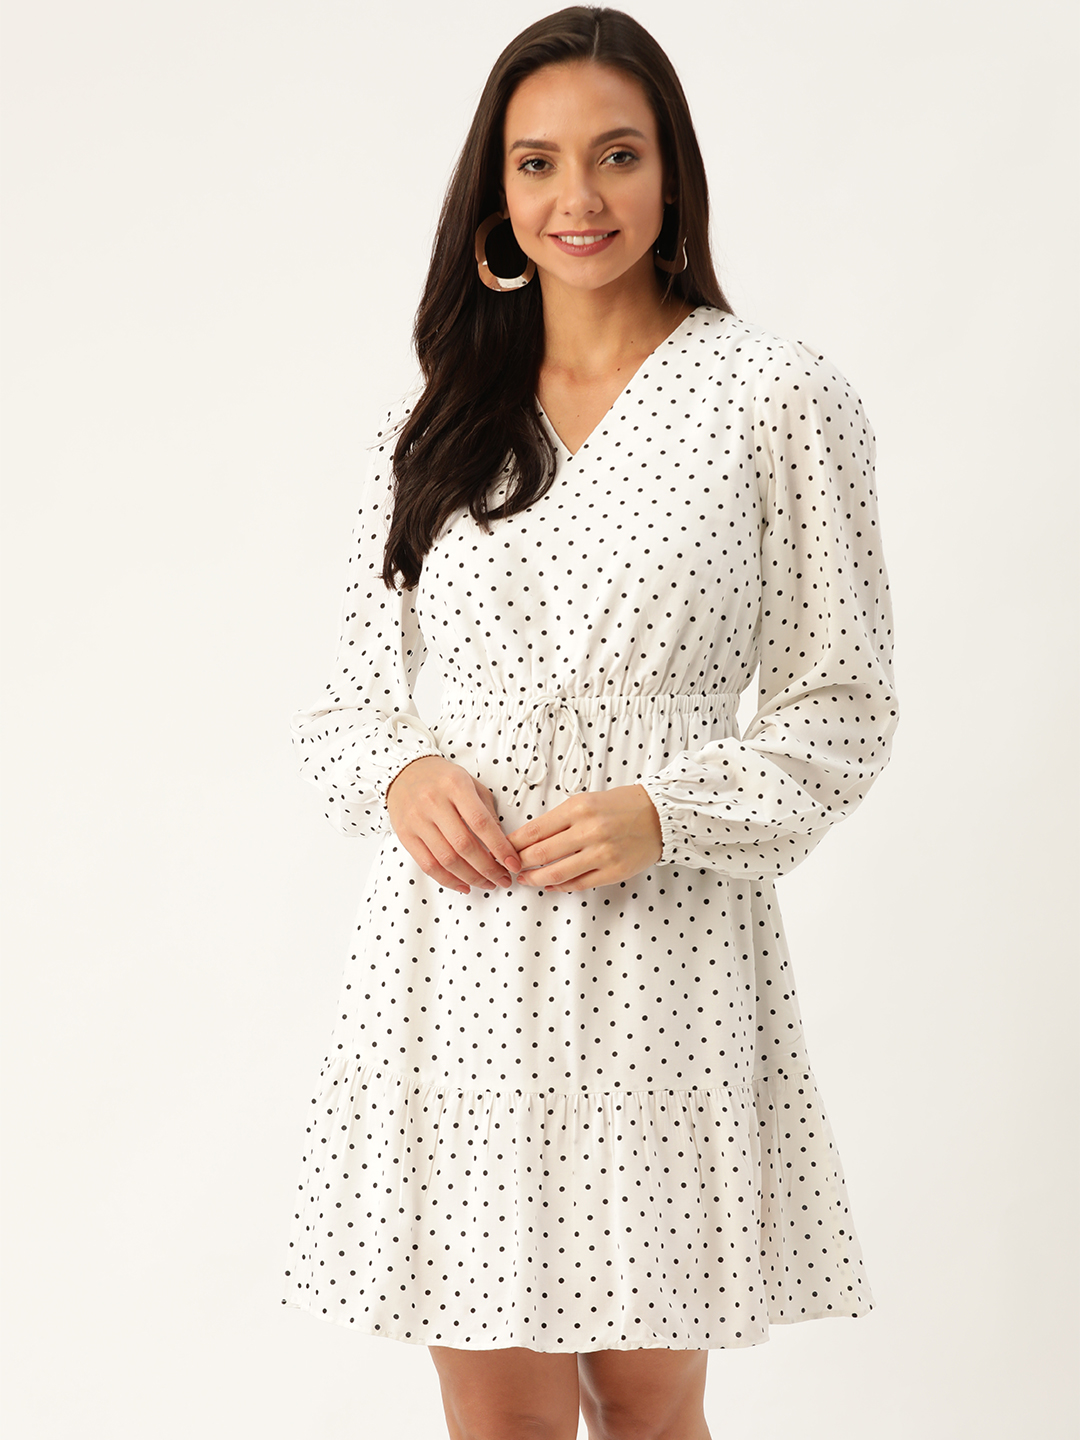 Dresses-Simply Elegant Polka Dot Dress1